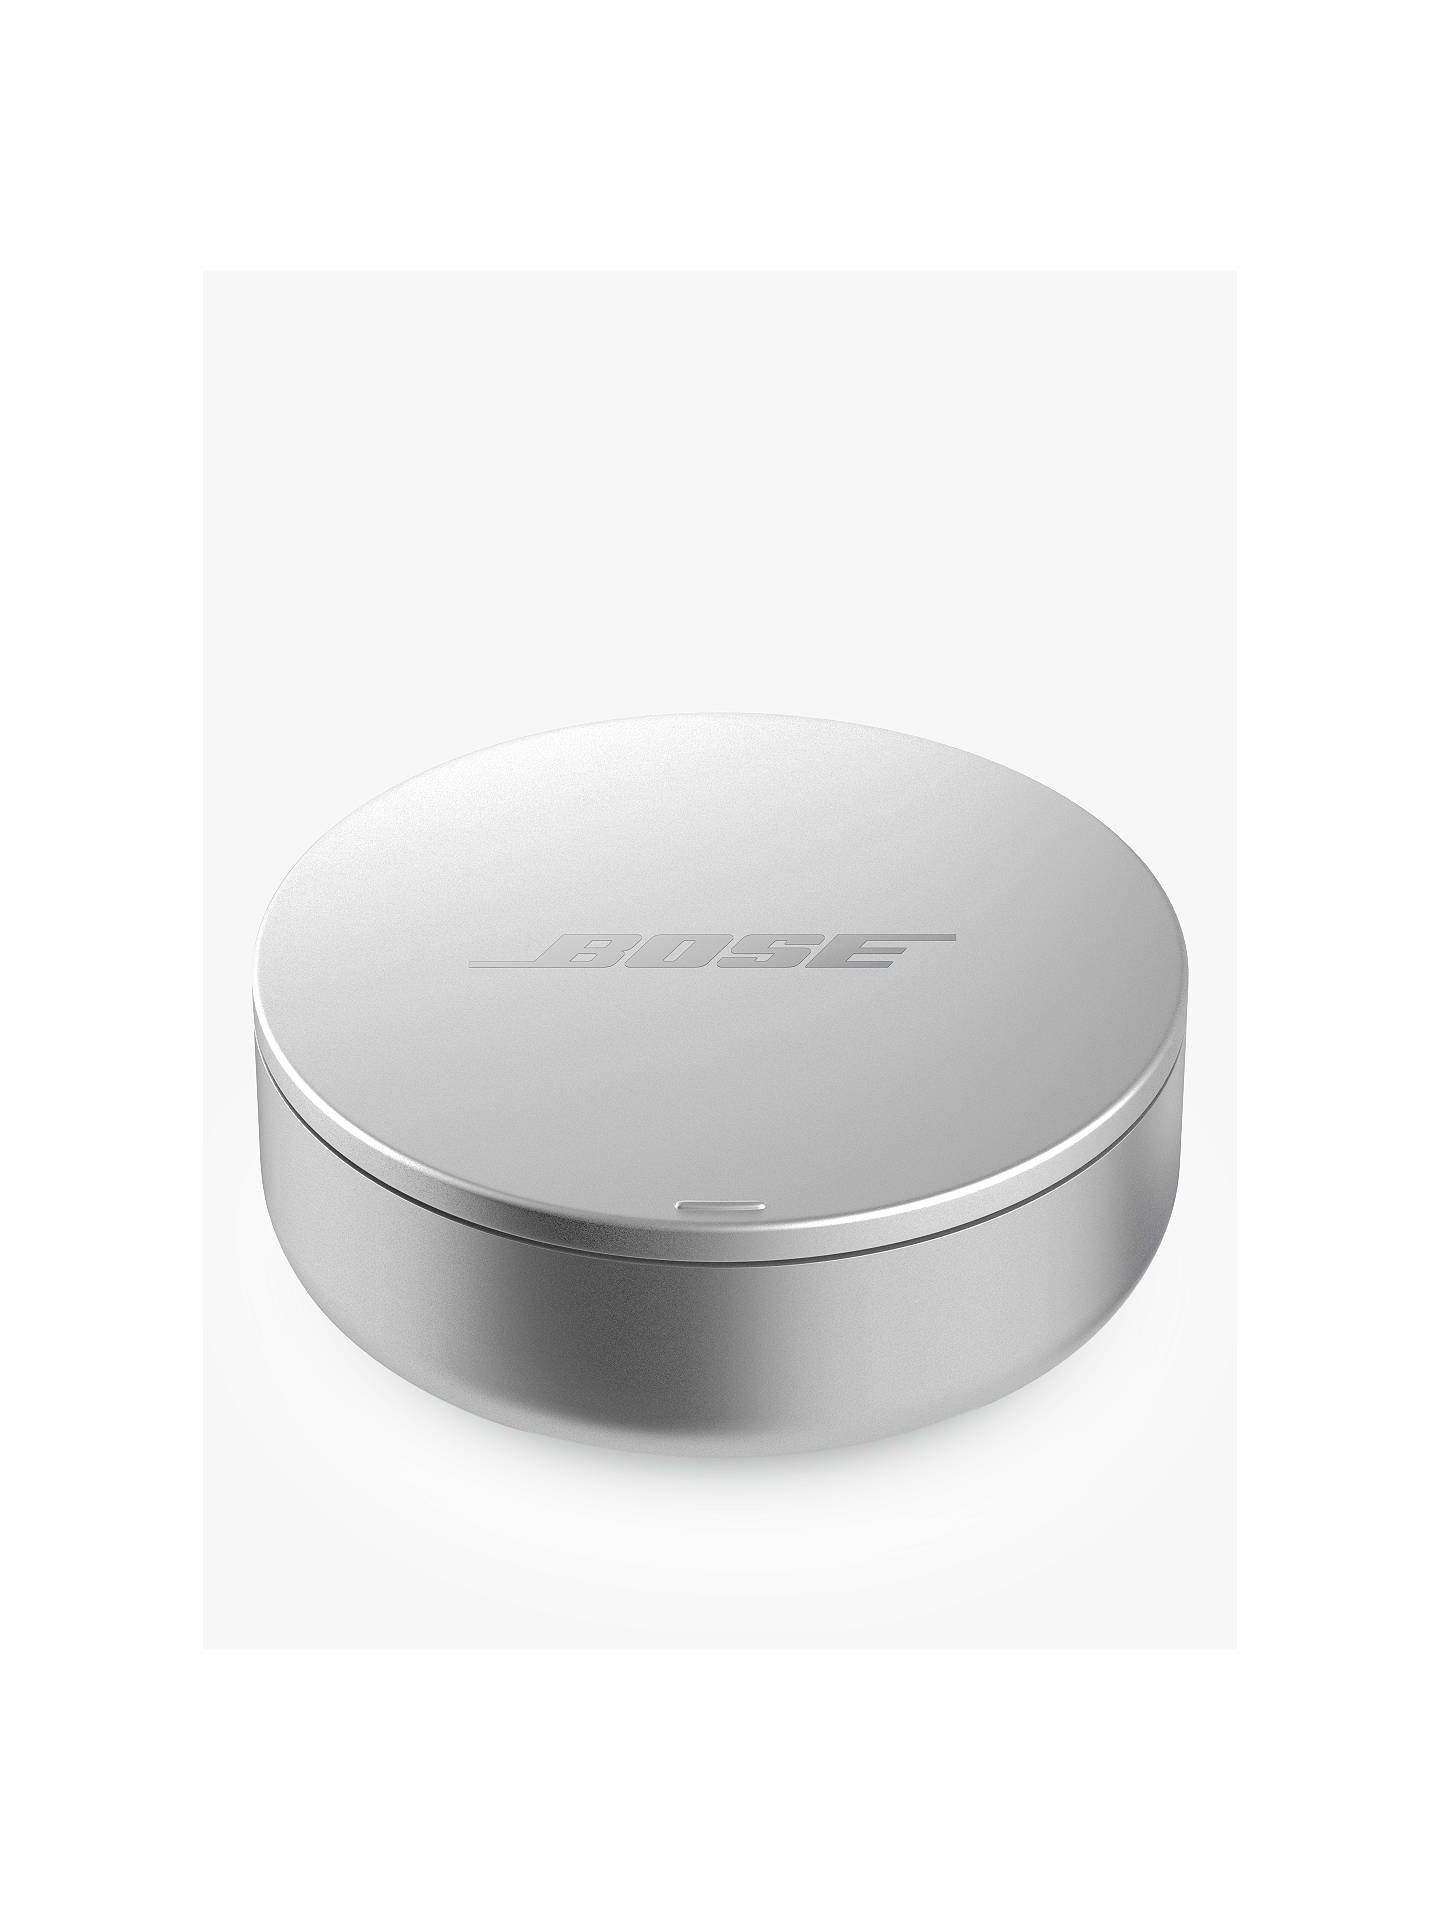 BuyBose® Noise-Masking Sleepbuds Online at johnlewis.com